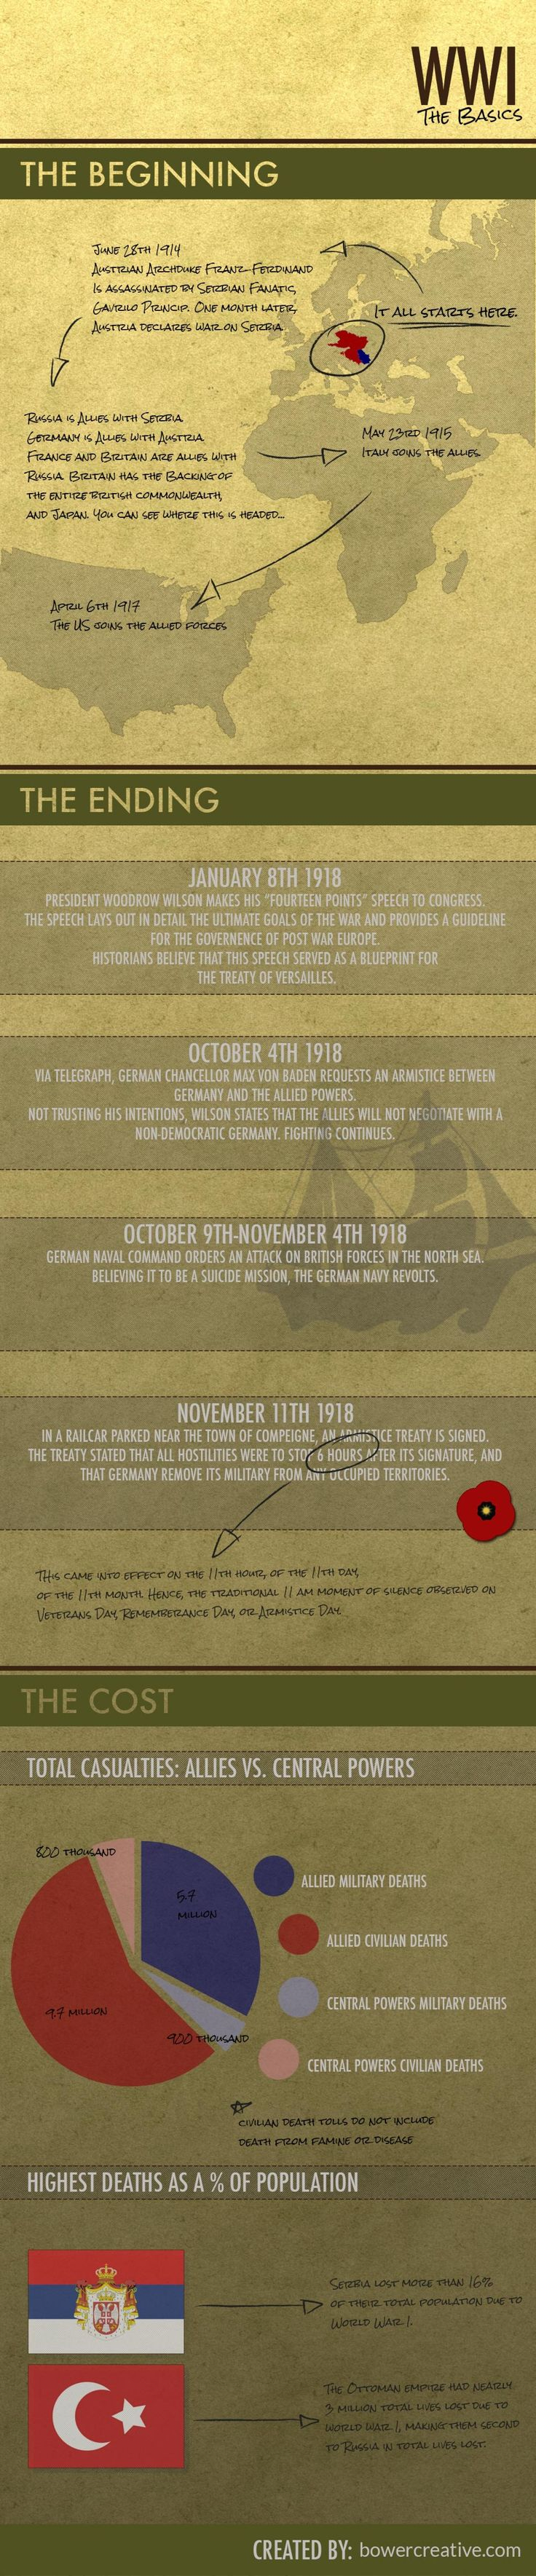 History A Very Quick Briefing On The Events Of World War Basic Chronology And Casualty Report Are Included It Is Remembrance Day Today After All